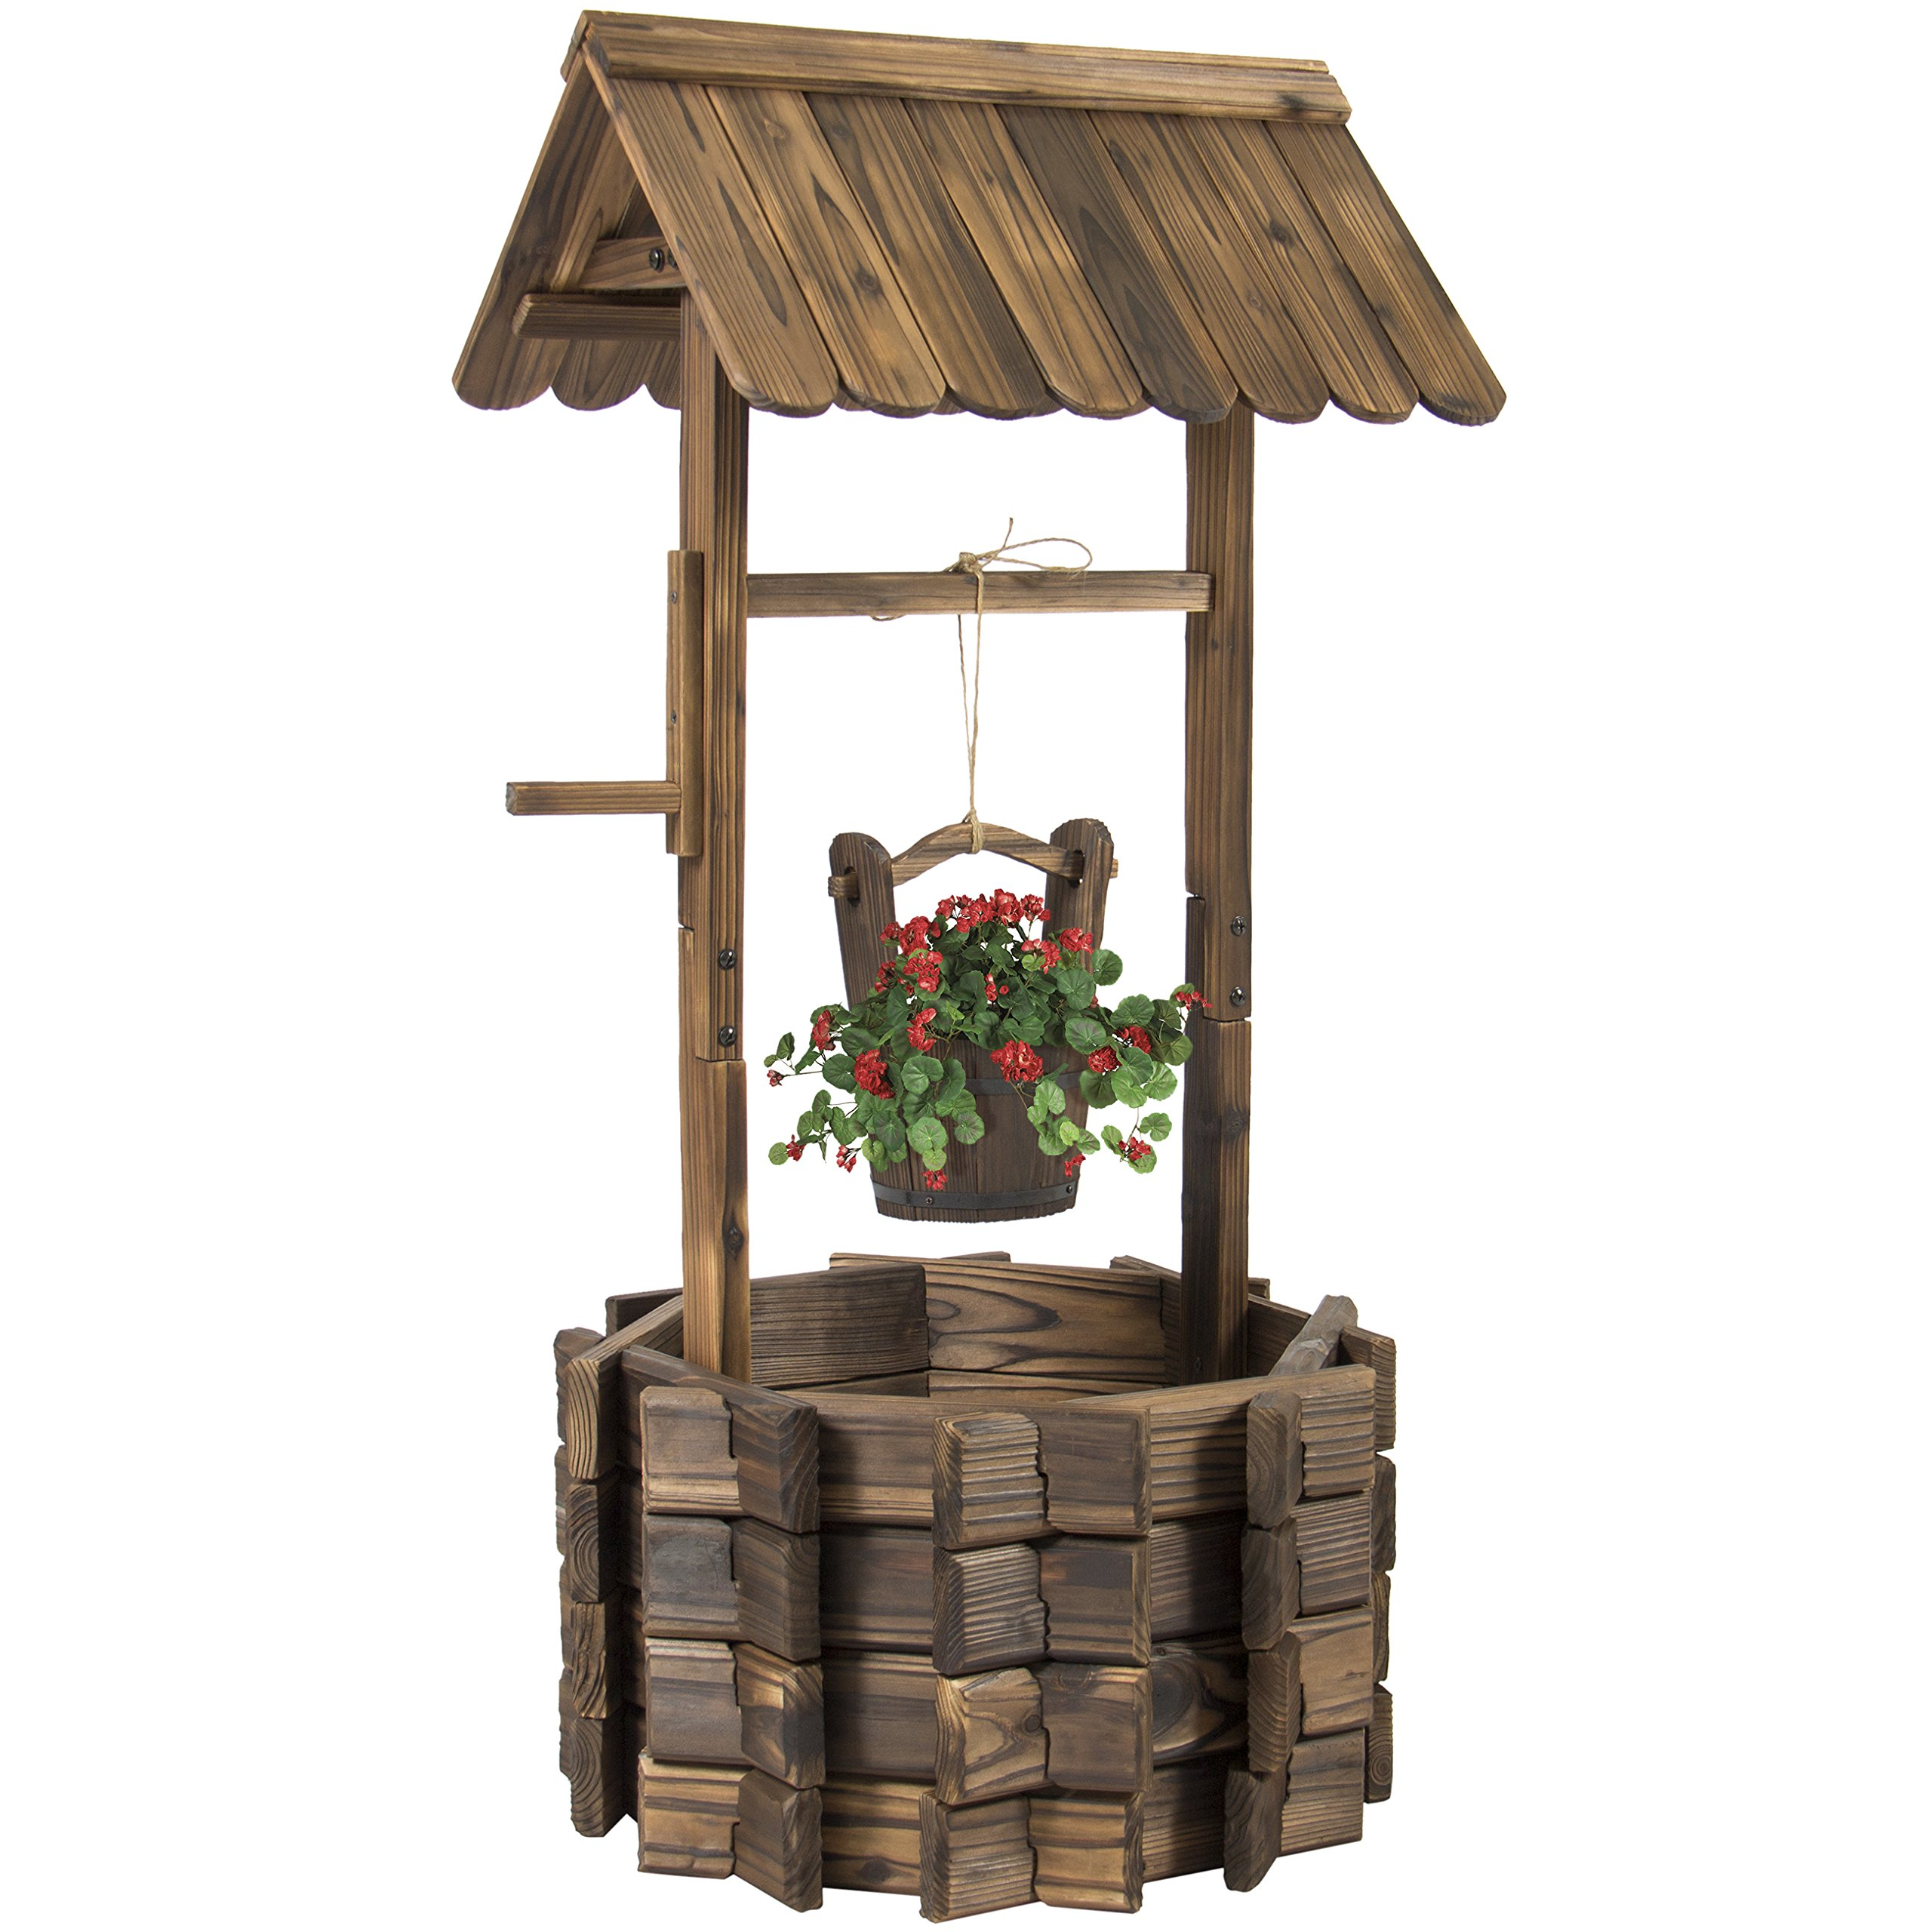 Best Choice Products Wooden Wishing Well Bucket Flower Planter Patio Garden Outdoor Home Décor by Best Choice Products